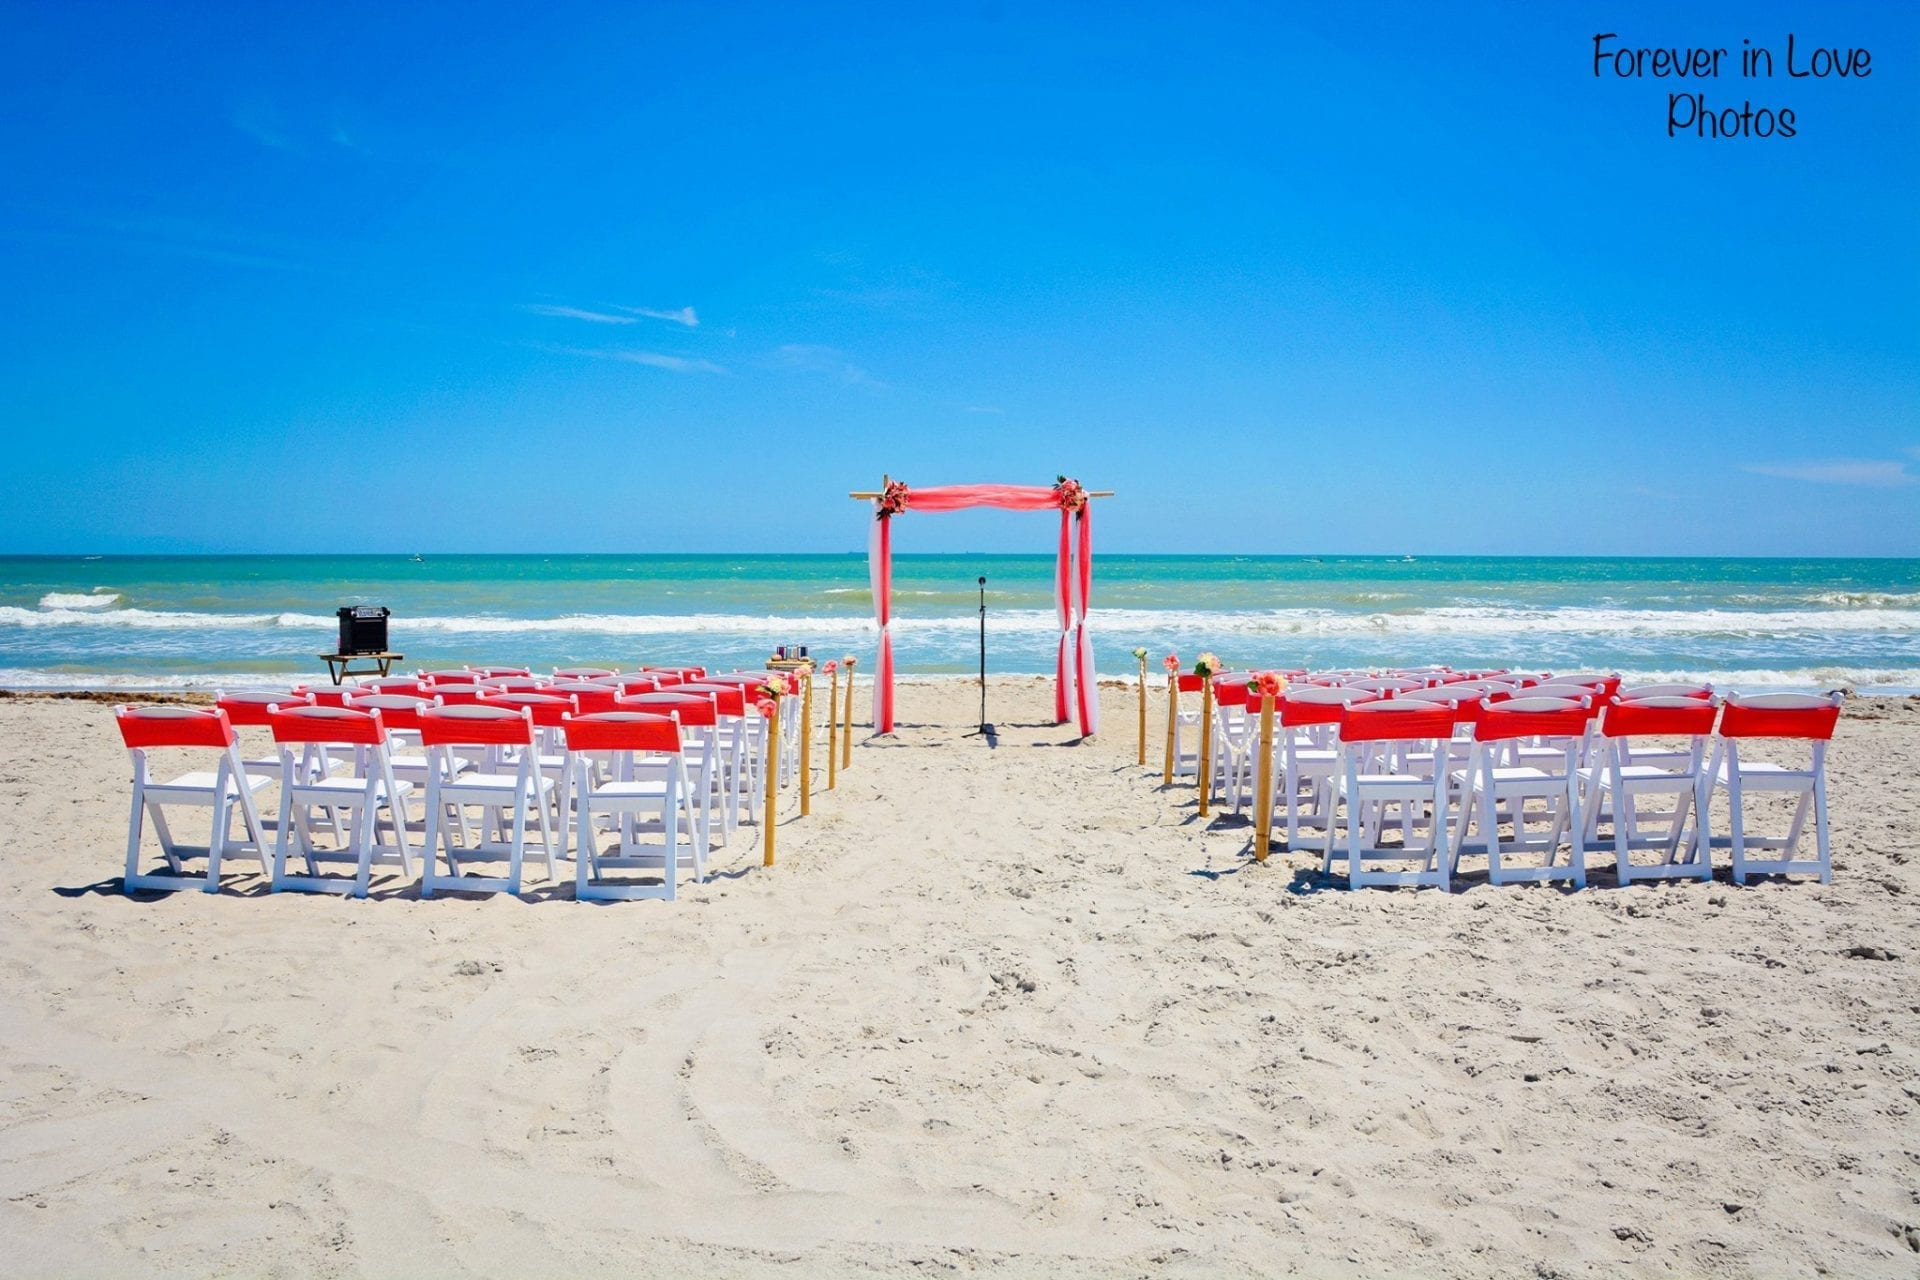 Coral Distinctive Design Wedding arch on Destin Beach Florida